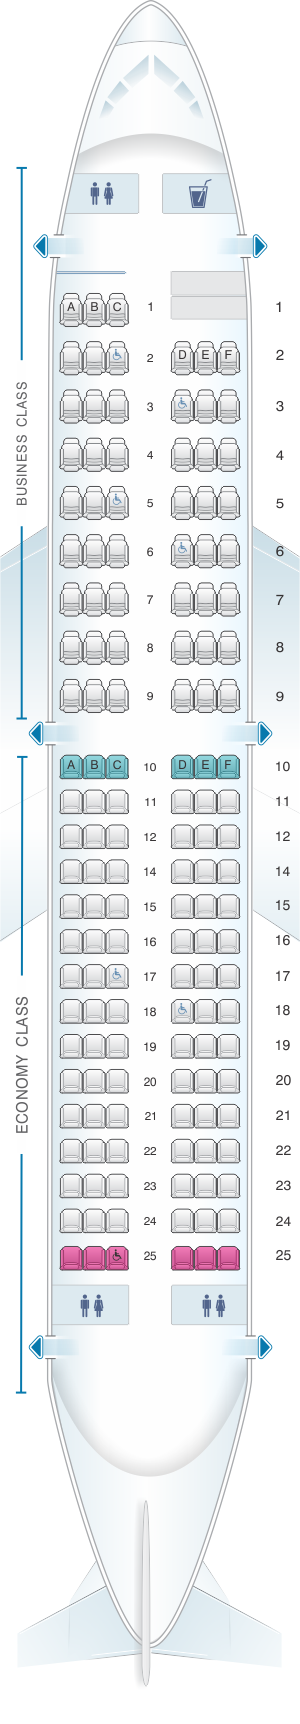 Seat map for Iberia Airbus A319 Config.2